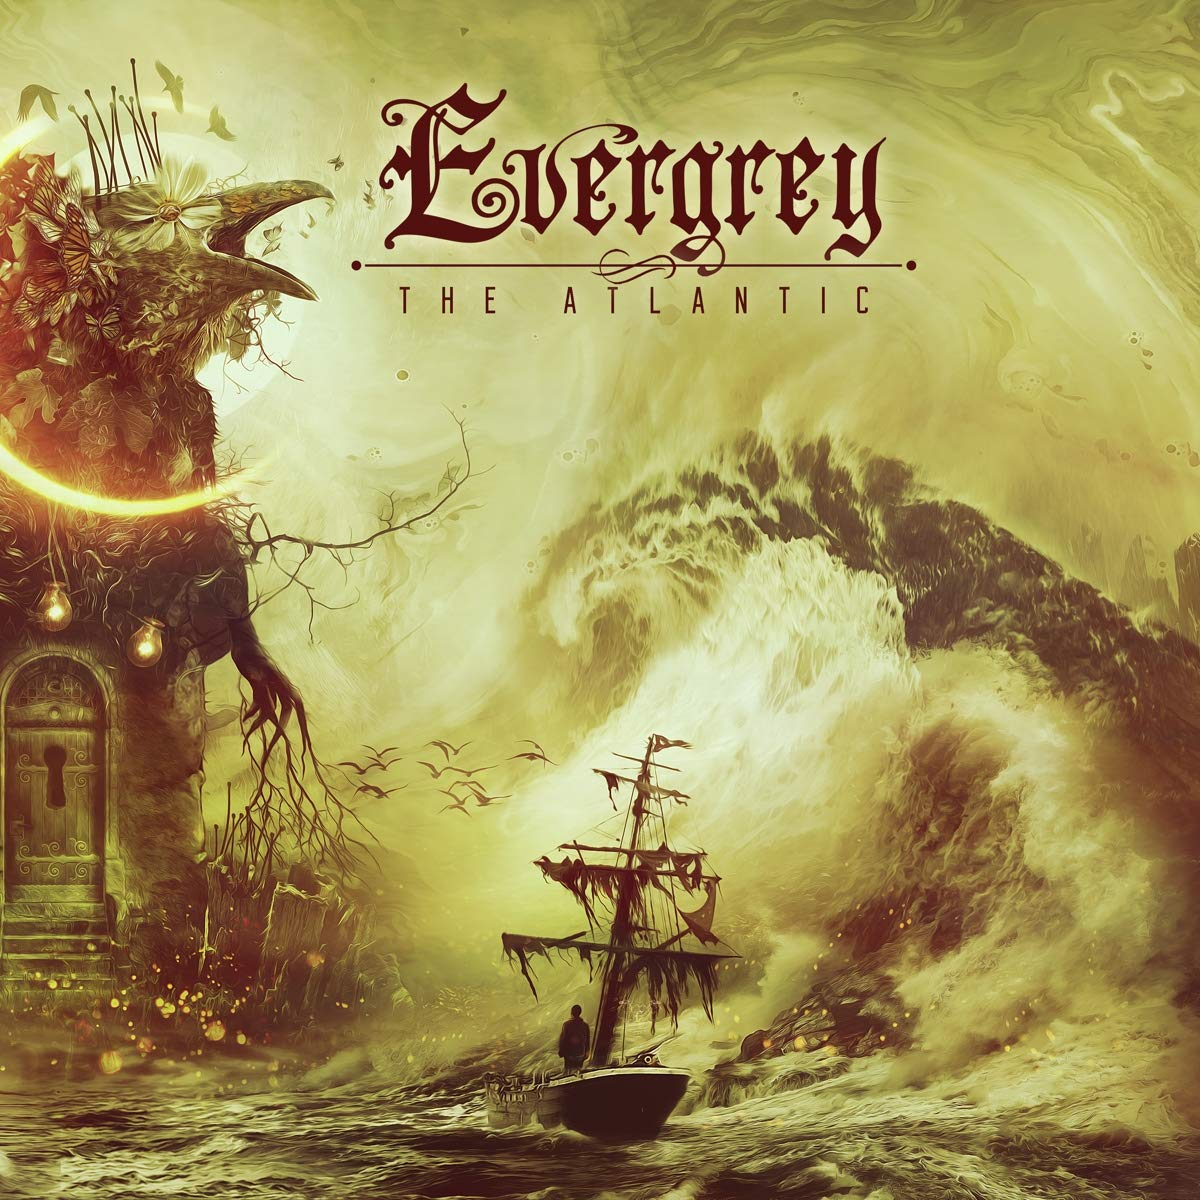 CD : Evergrey - The Atlantic (Digipack Packaging)